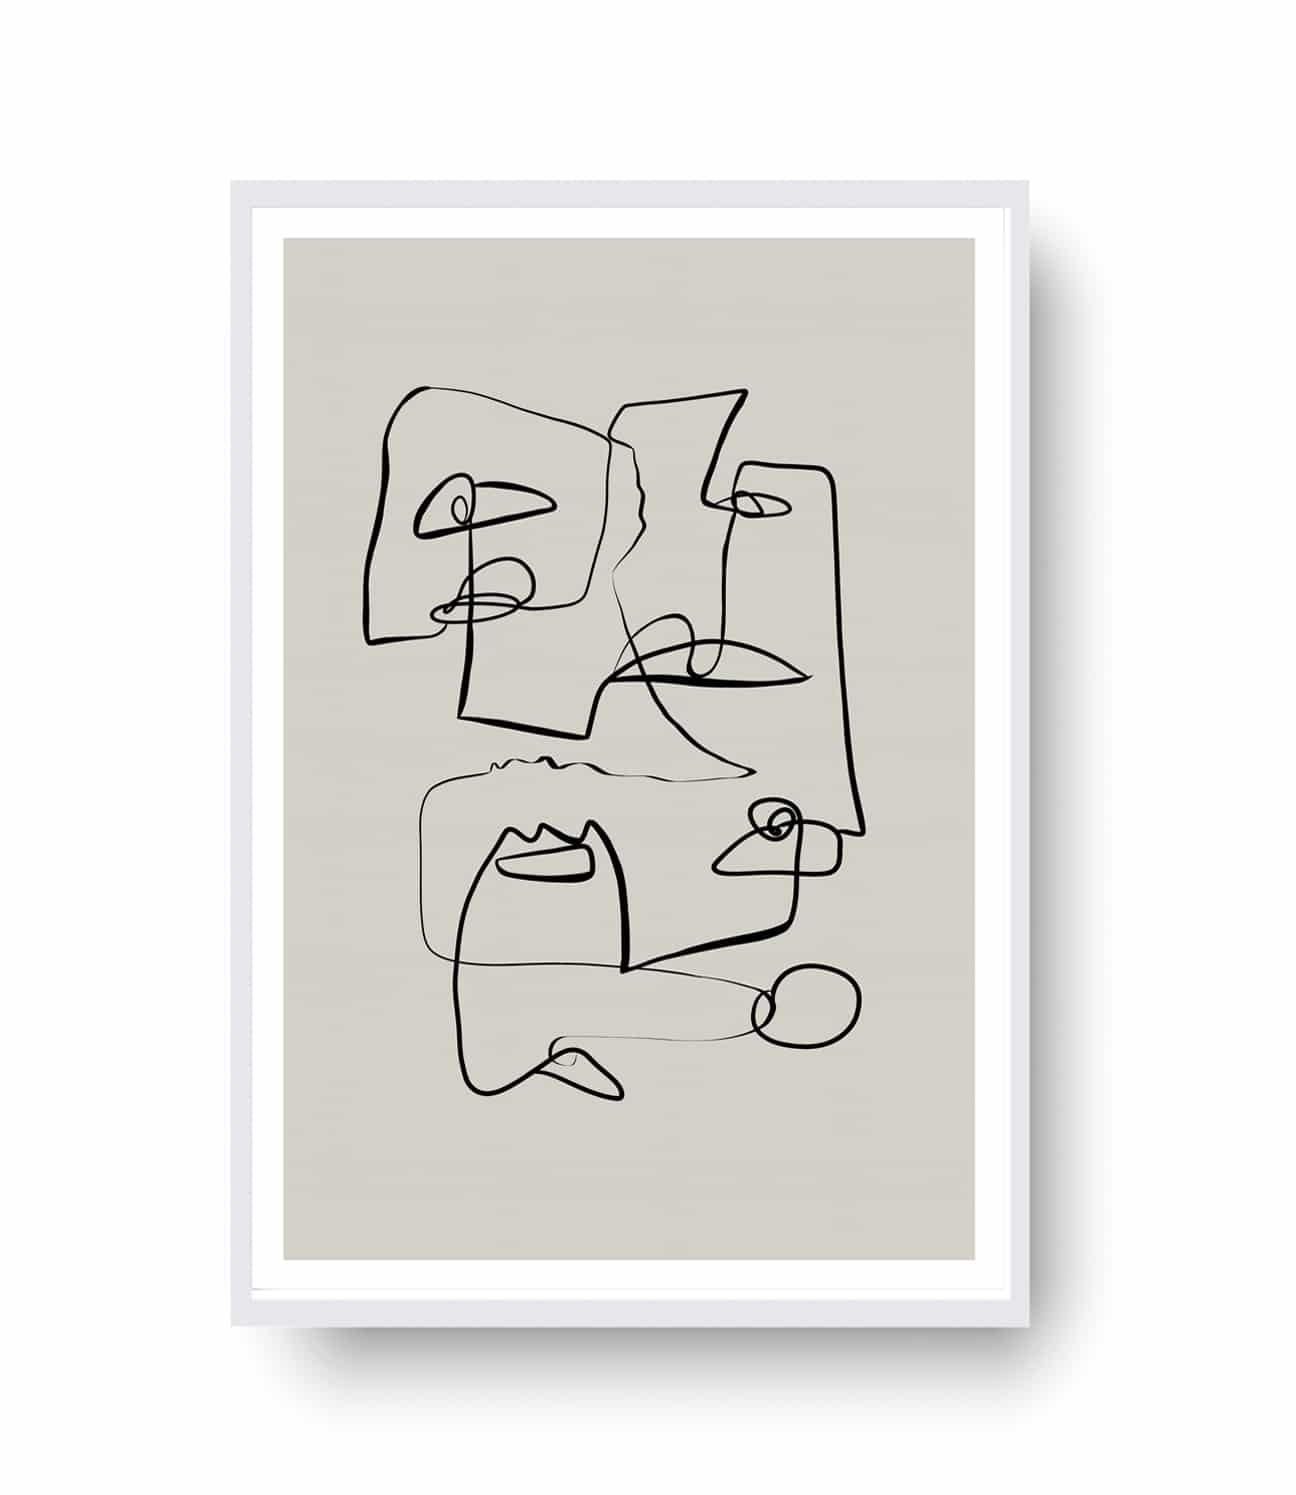 Face à Face in Line Art is an original creation inspired bythe cubism art movement, questioning how today'senvironment and technologies have changed theface-to-face conversation.